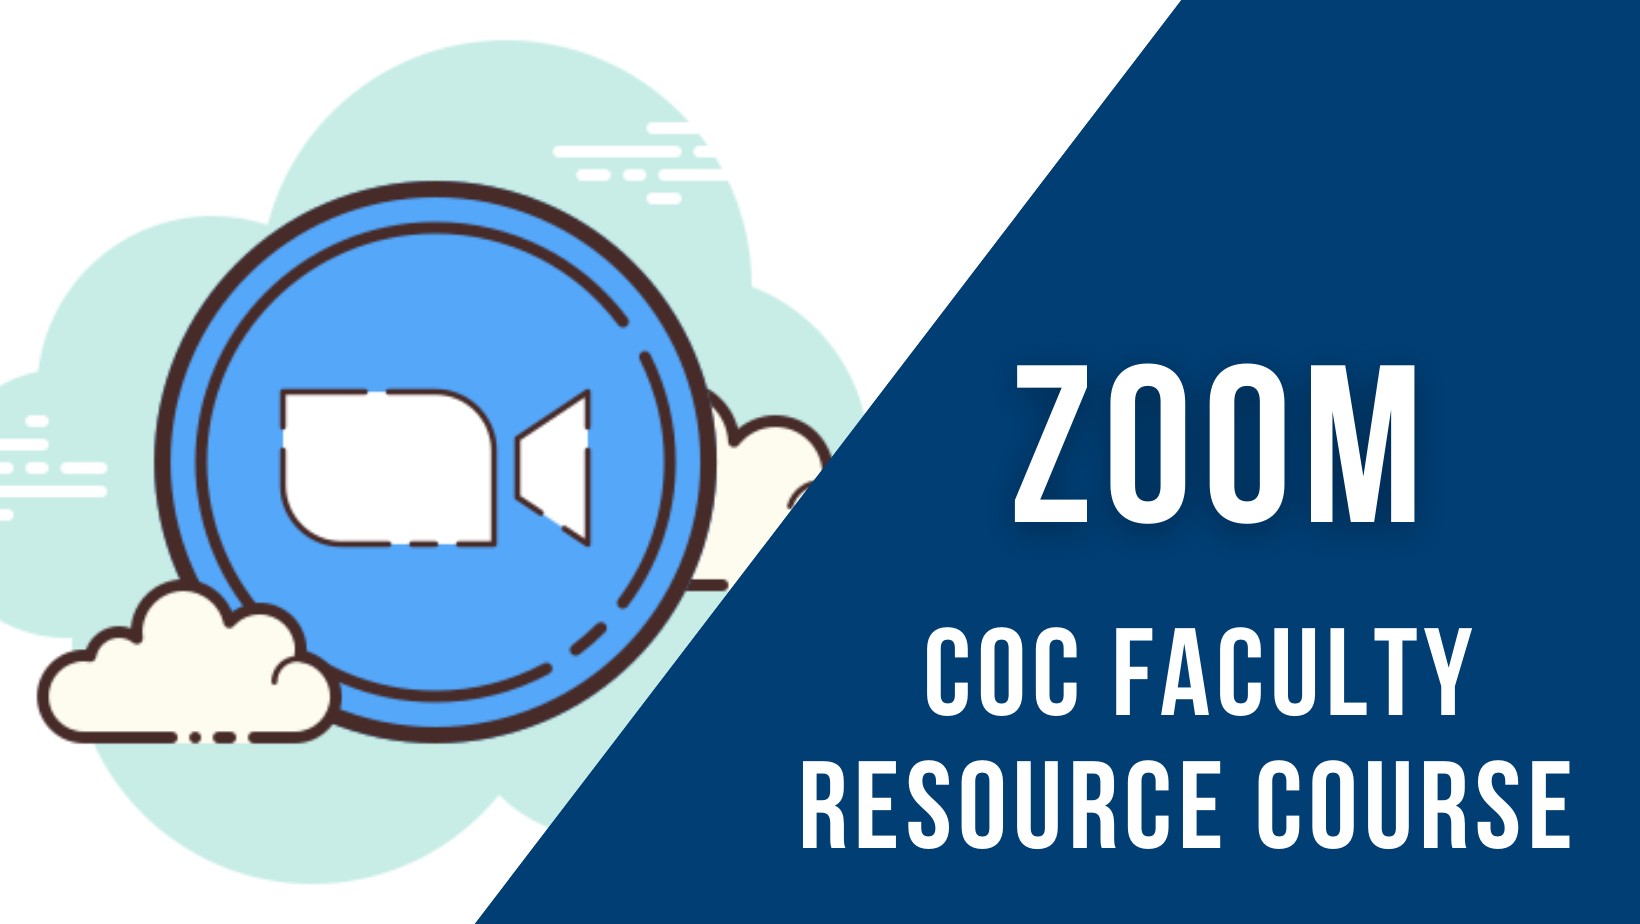 Faculty resource course - Zoom